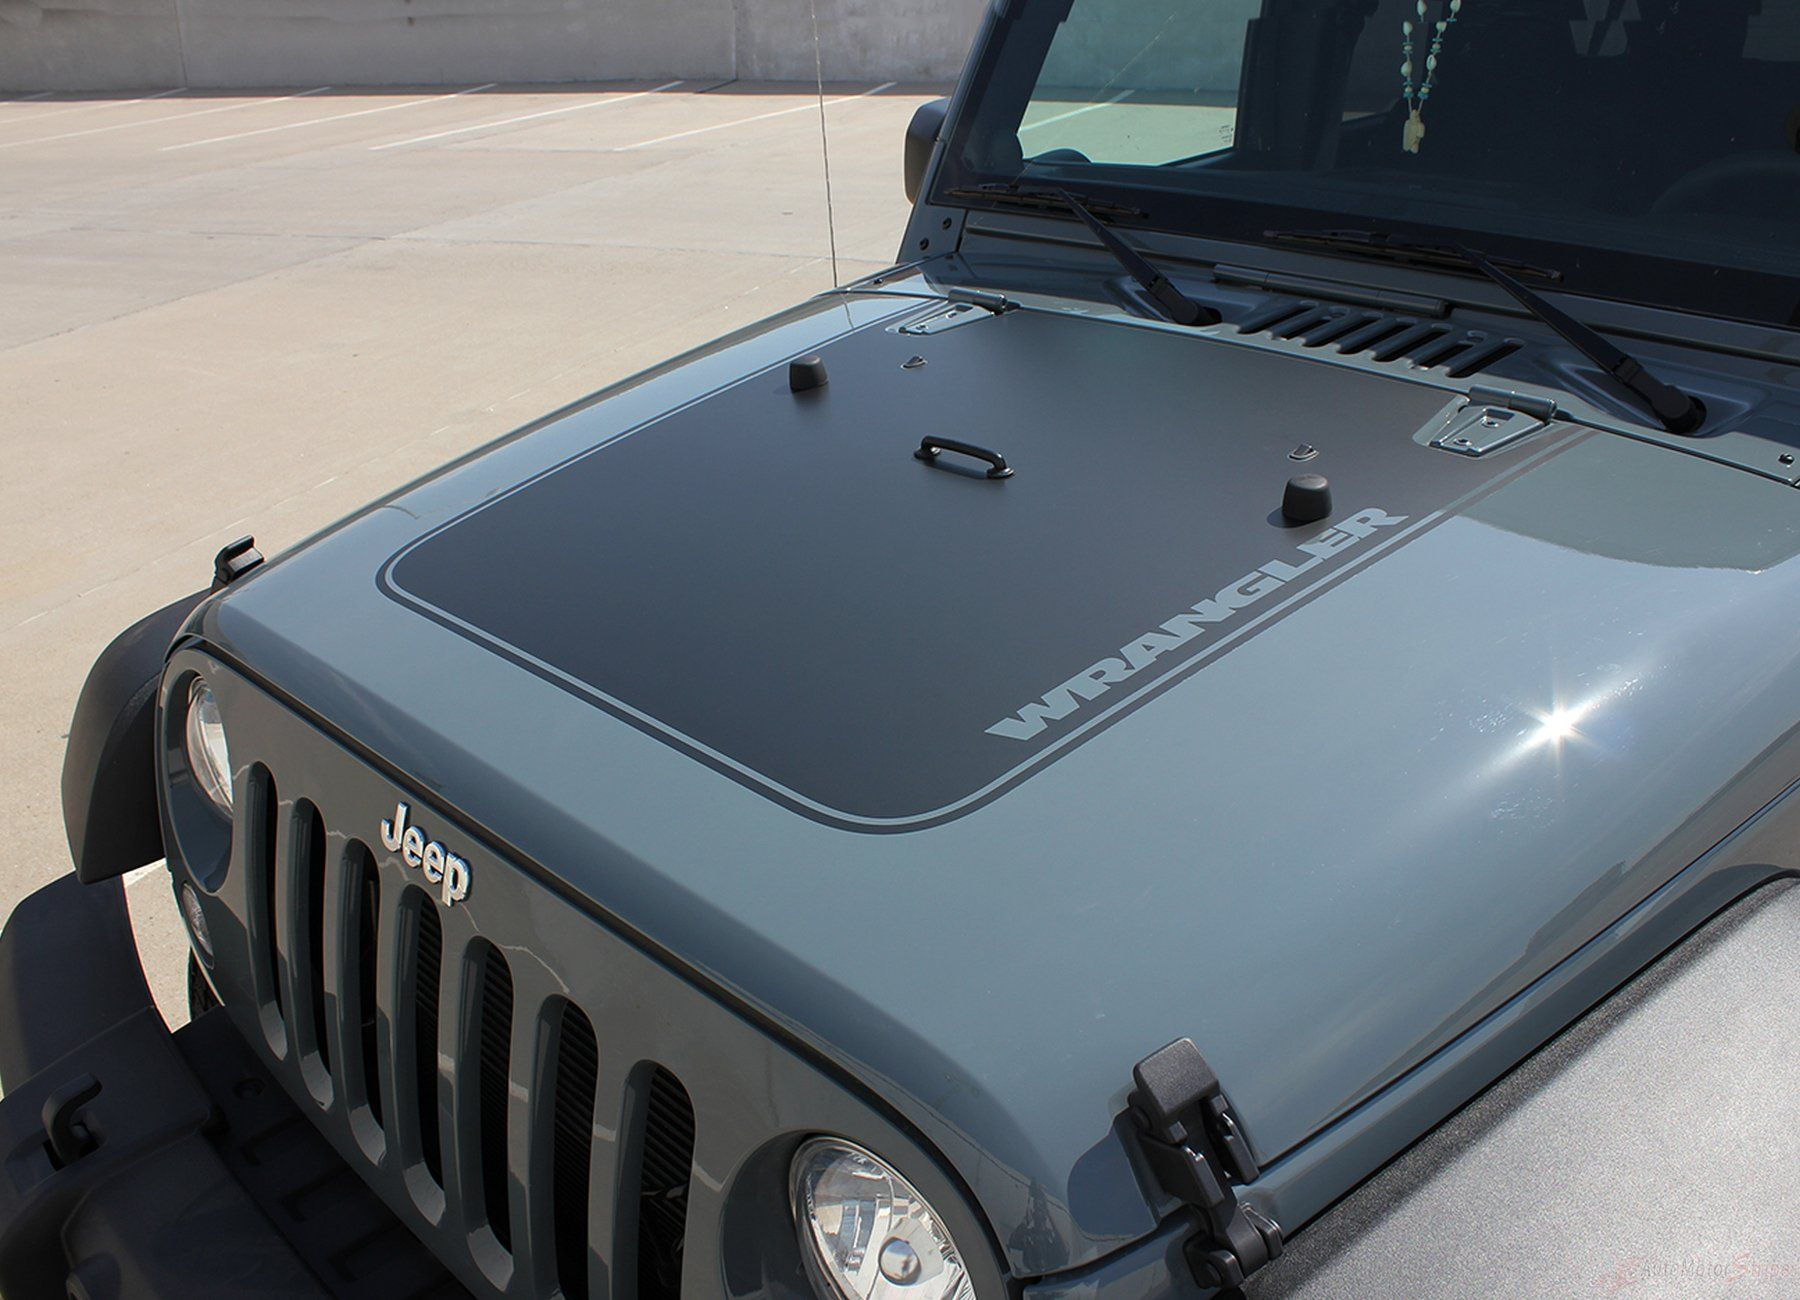 2007 2017 Jeep Wrangler Outfitter Oem Factory Style Hood Blackout Vinyl Decal Graphic Stripes Jeep Wrangler 2017 Jeep Wrangler Wrangler Accessories